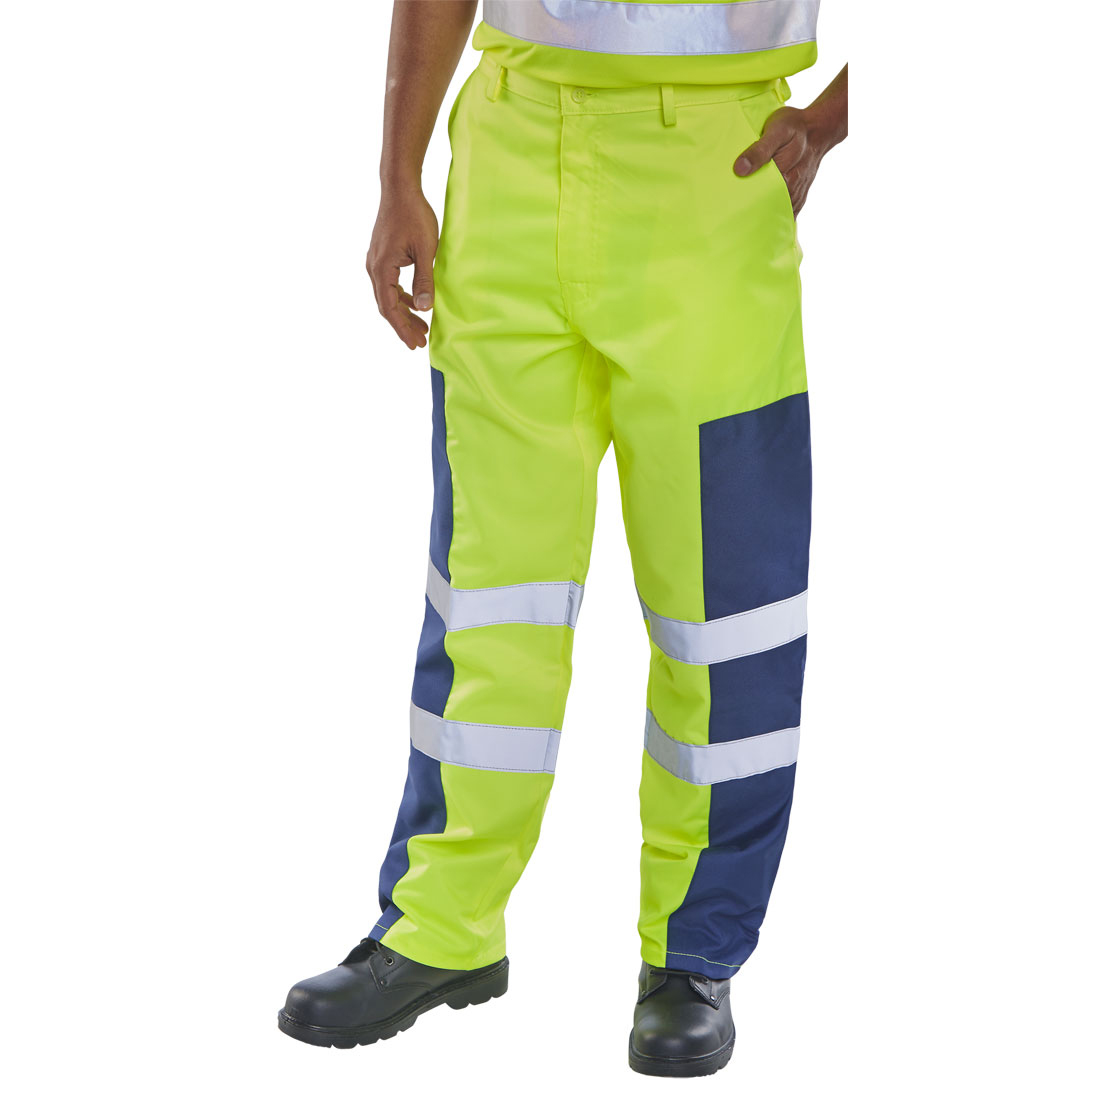 Click Workwear Trousers Hi-Vis Nylon Patch Yellow/Navy Blue 48 Ref PCTSYNNP48 Up to 3 Day Leadtime